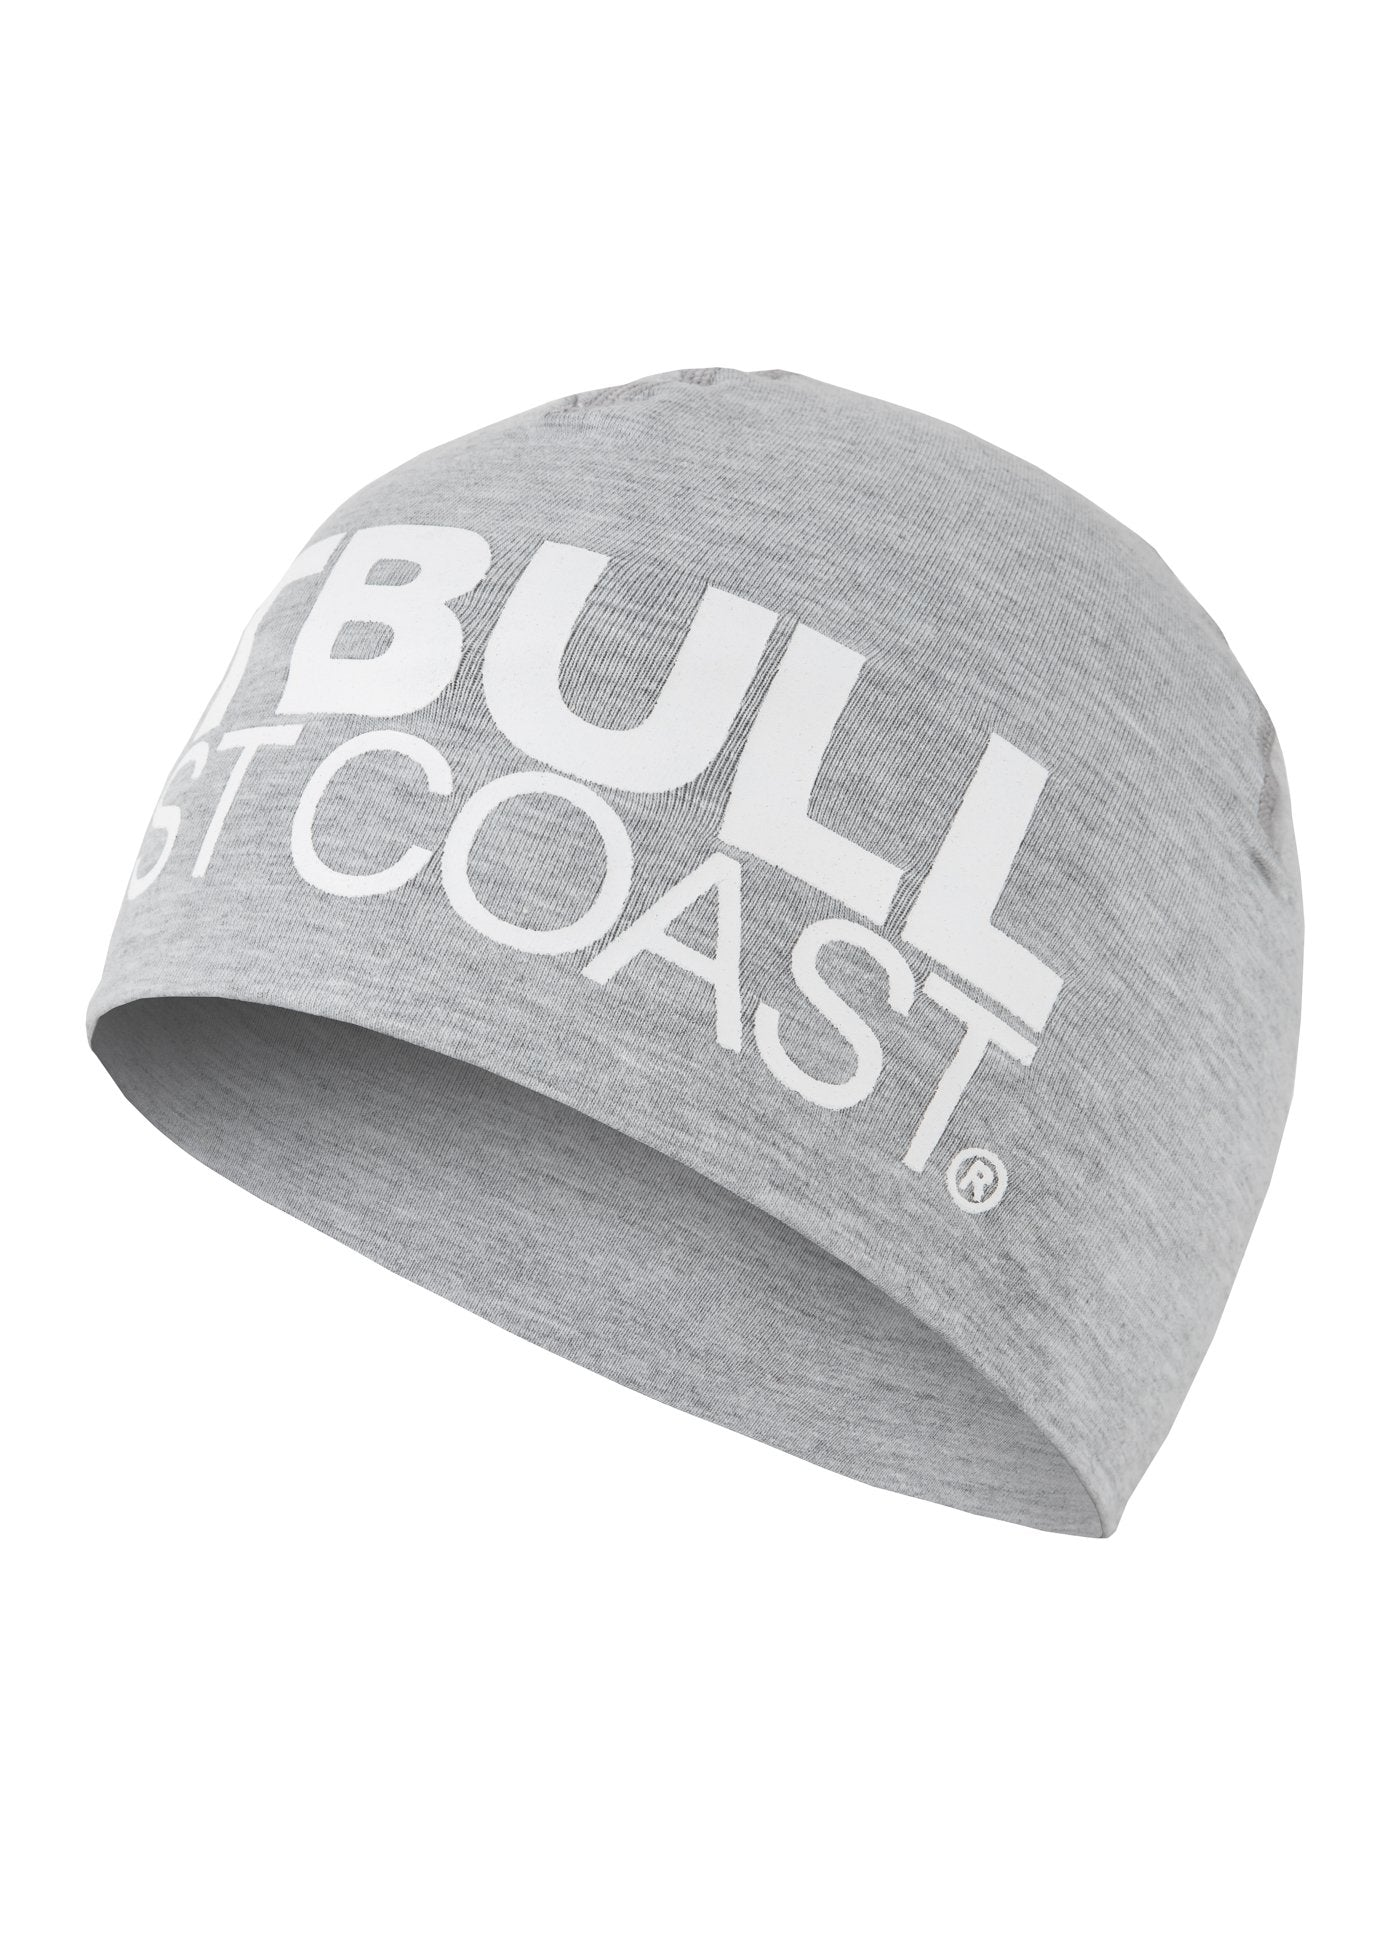 Compression Beanie TNT Grey - Pitbull West Coast  UK Store